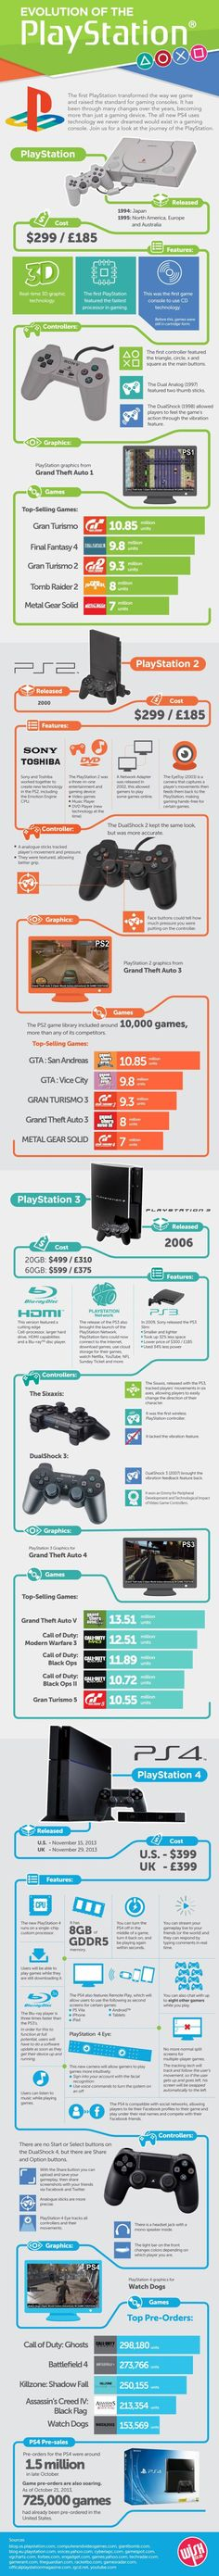 Evolution of the PlayStation from PS1 to PS4: http://zapmylife.ca/evolution-of-the-playstation-from-ps1-ps4/